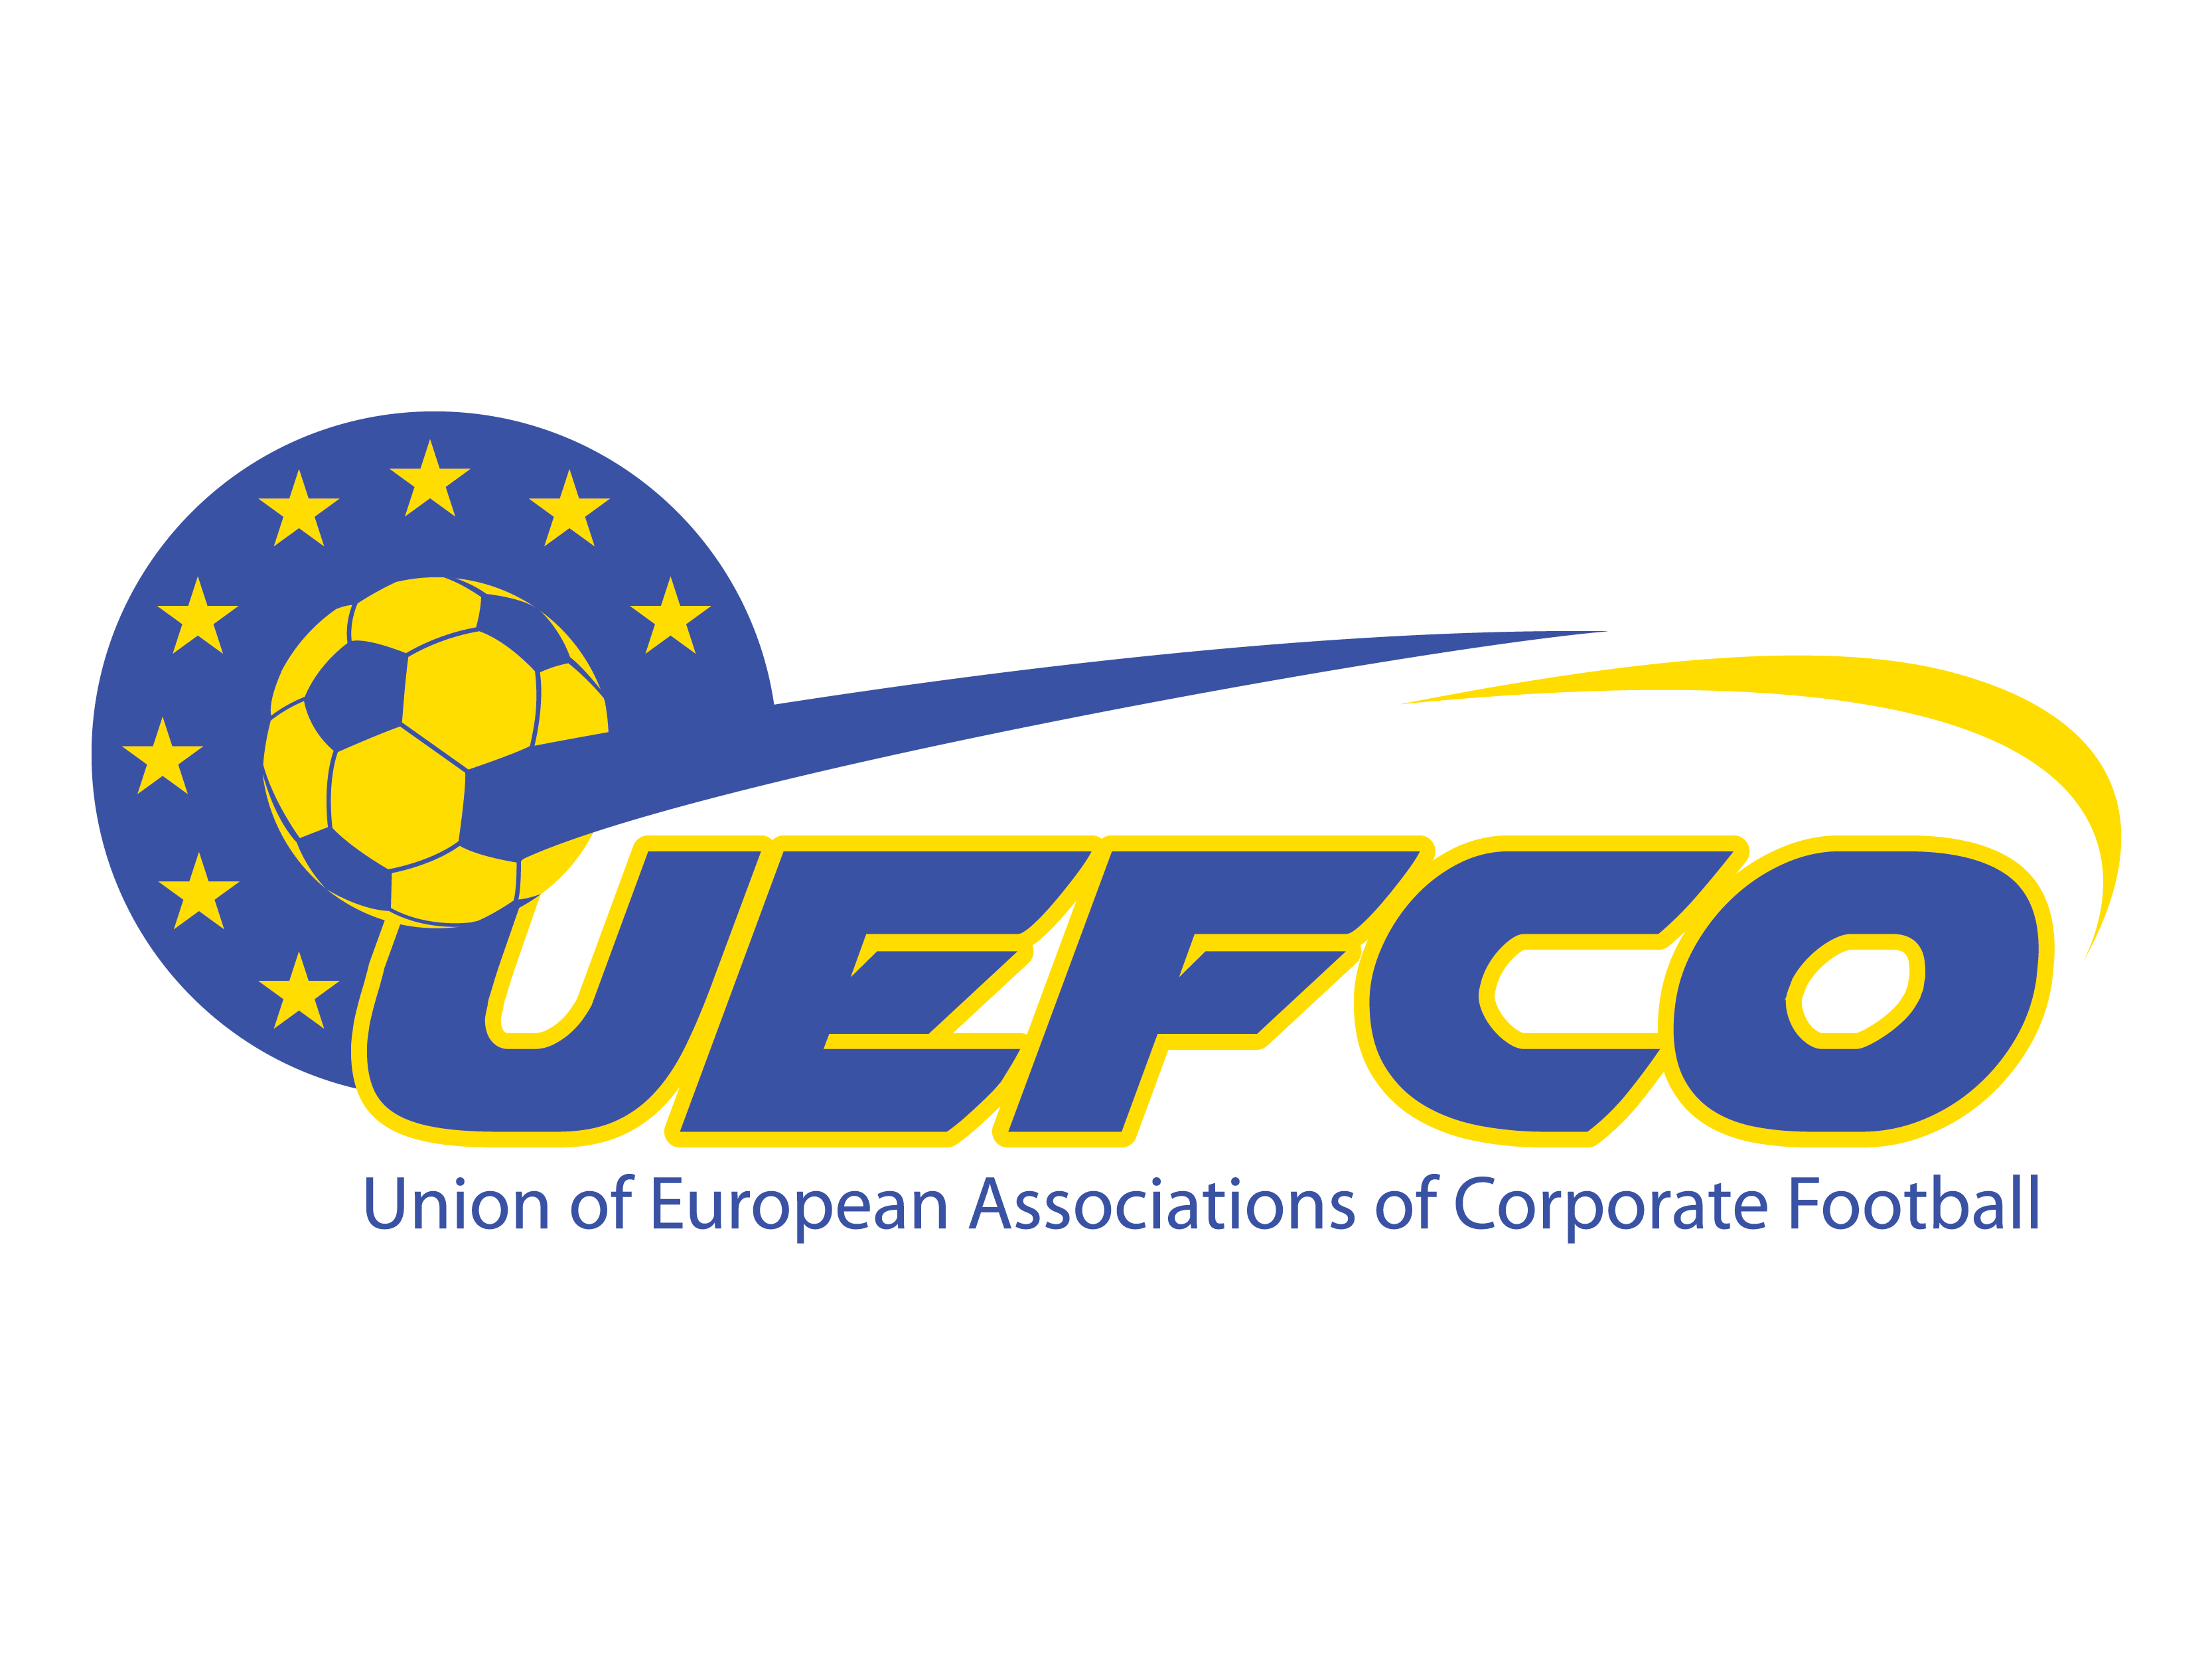 Union of European Associations of Corporate Football